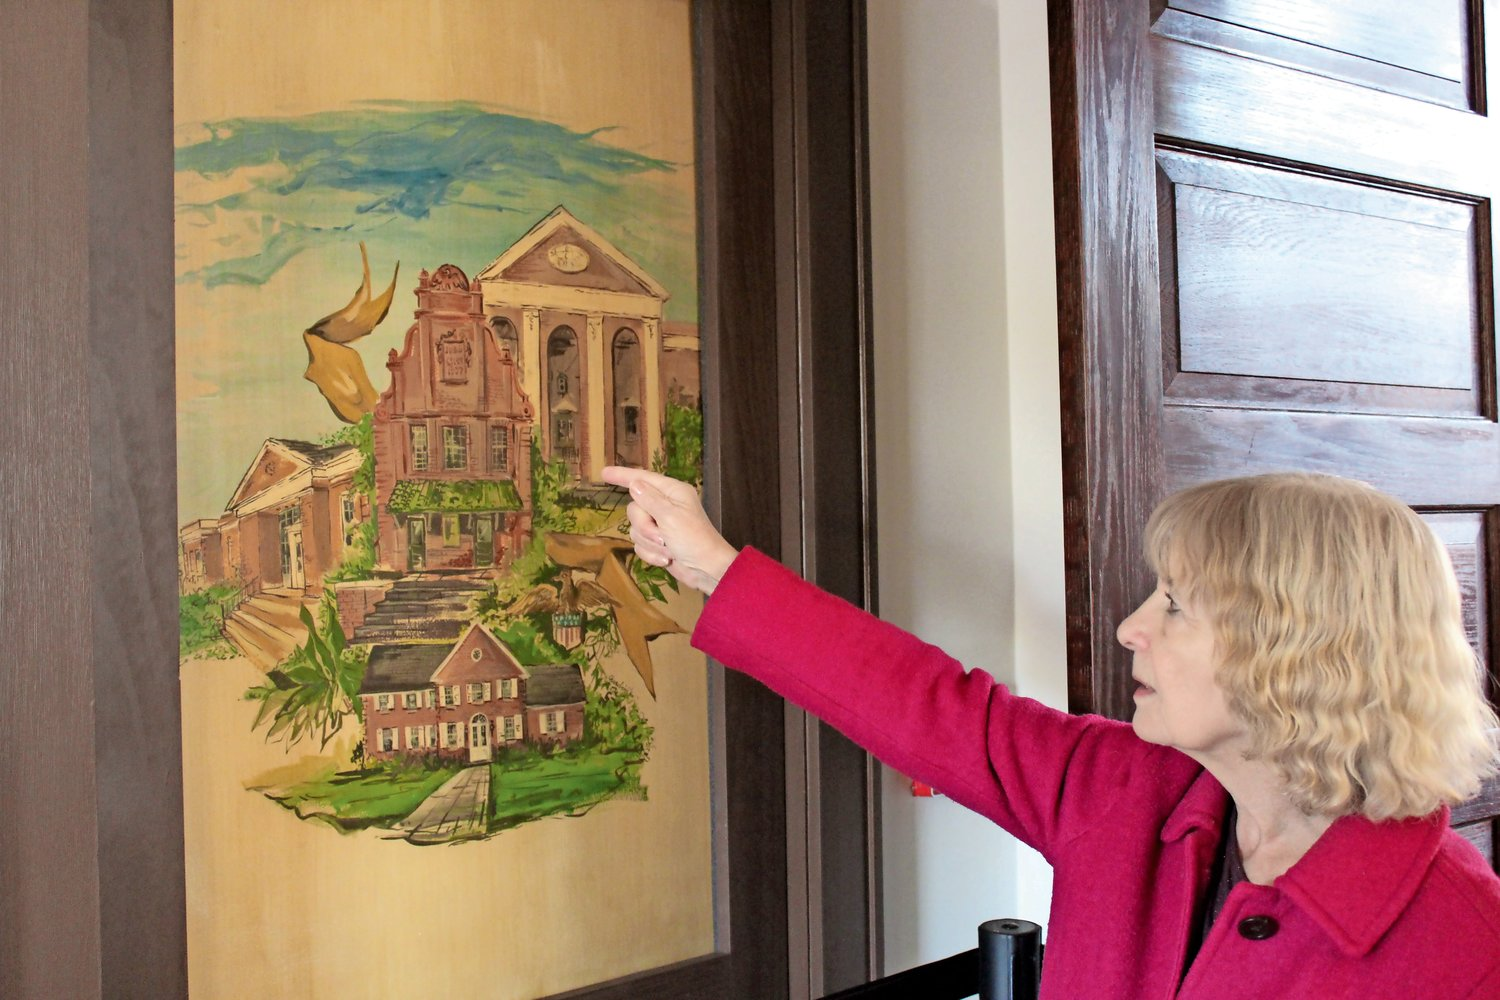 Museum President Georgie Connett pointed out a door panel in the museum that features major city landmarks.